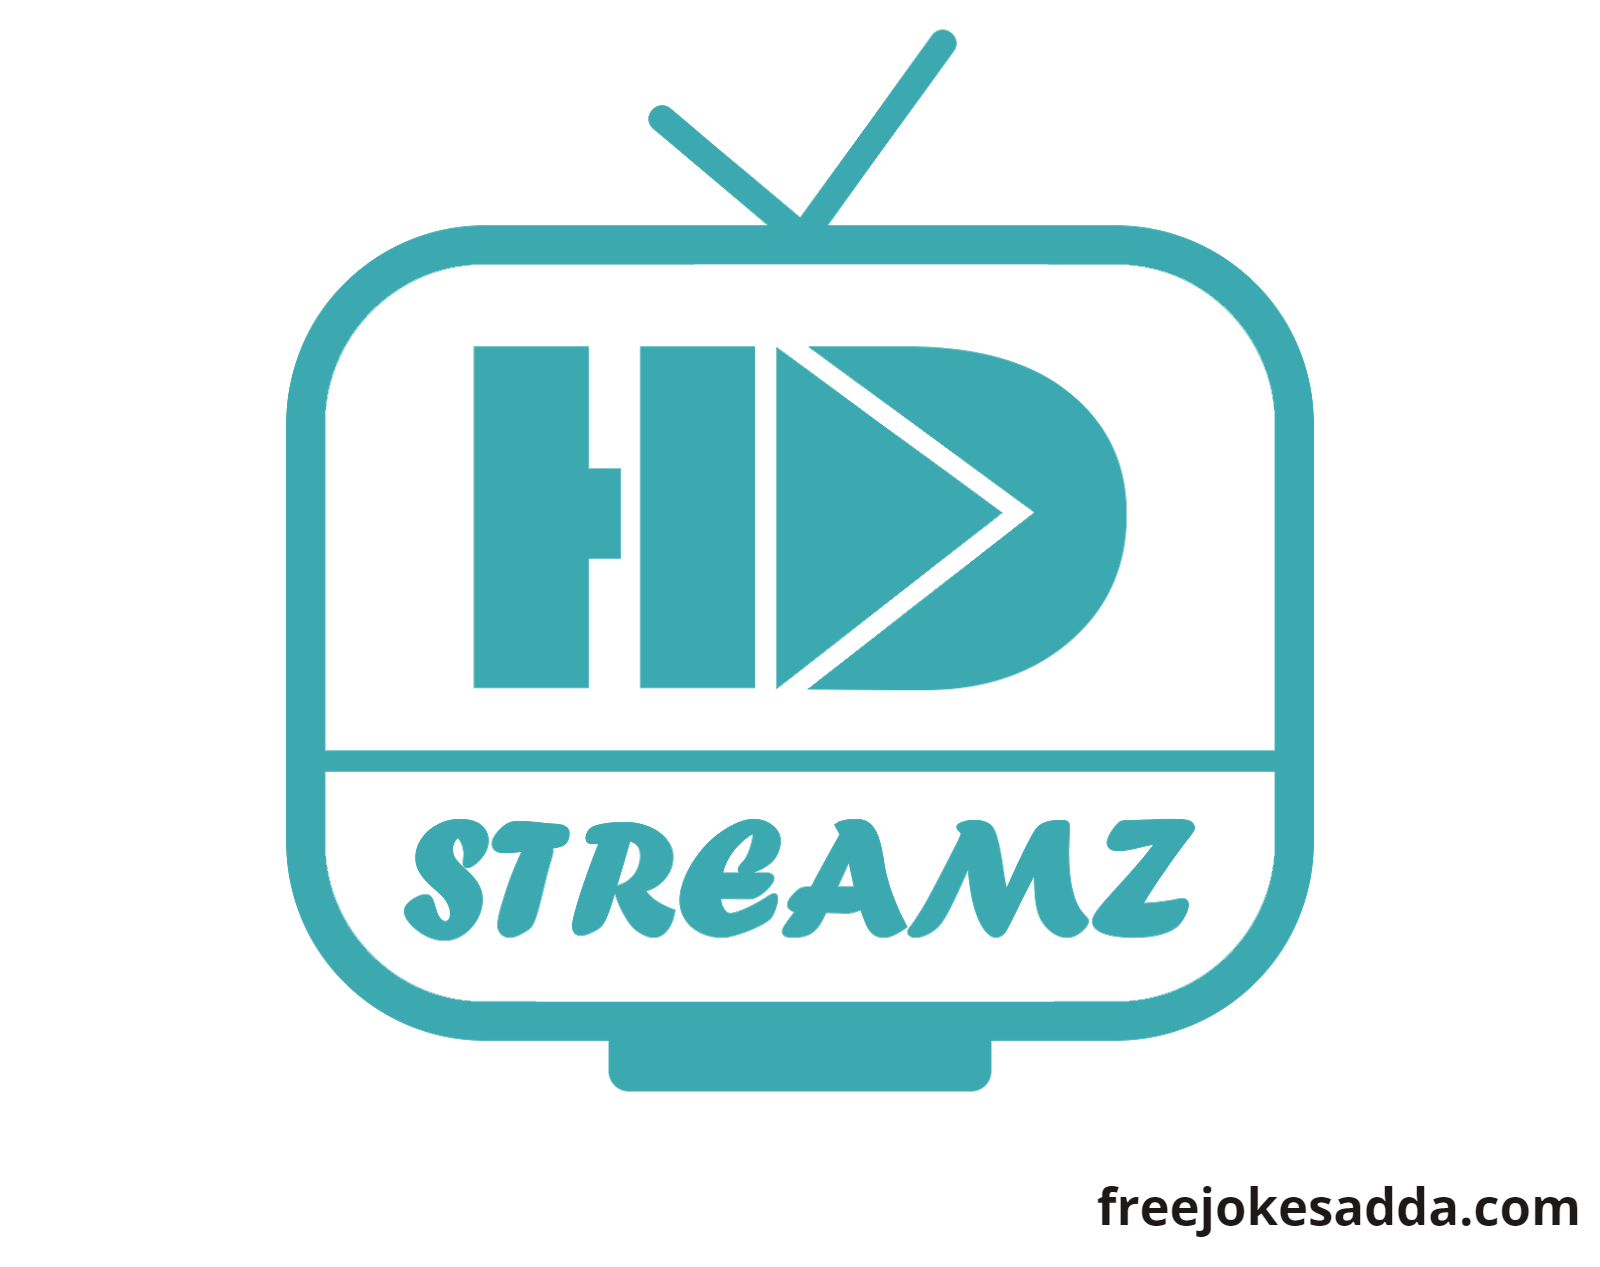 HD Streamz Mod APK Download Latest Version 3.3.10 Watch Online TV Shows, Movies, Music & More